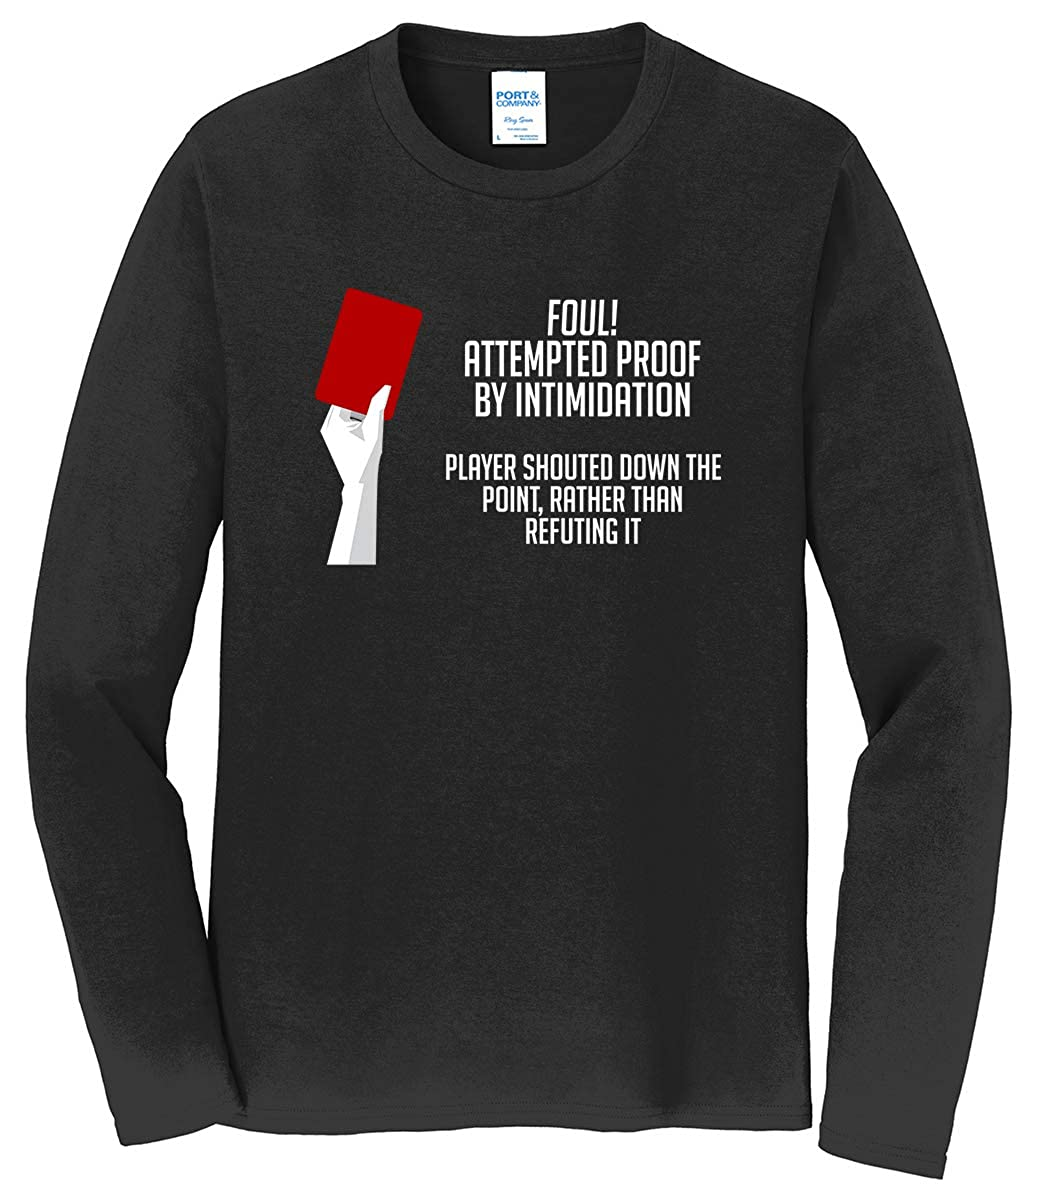 Tenacitee Mens Proof by Intimidation Logical Fallacy T-Shirt